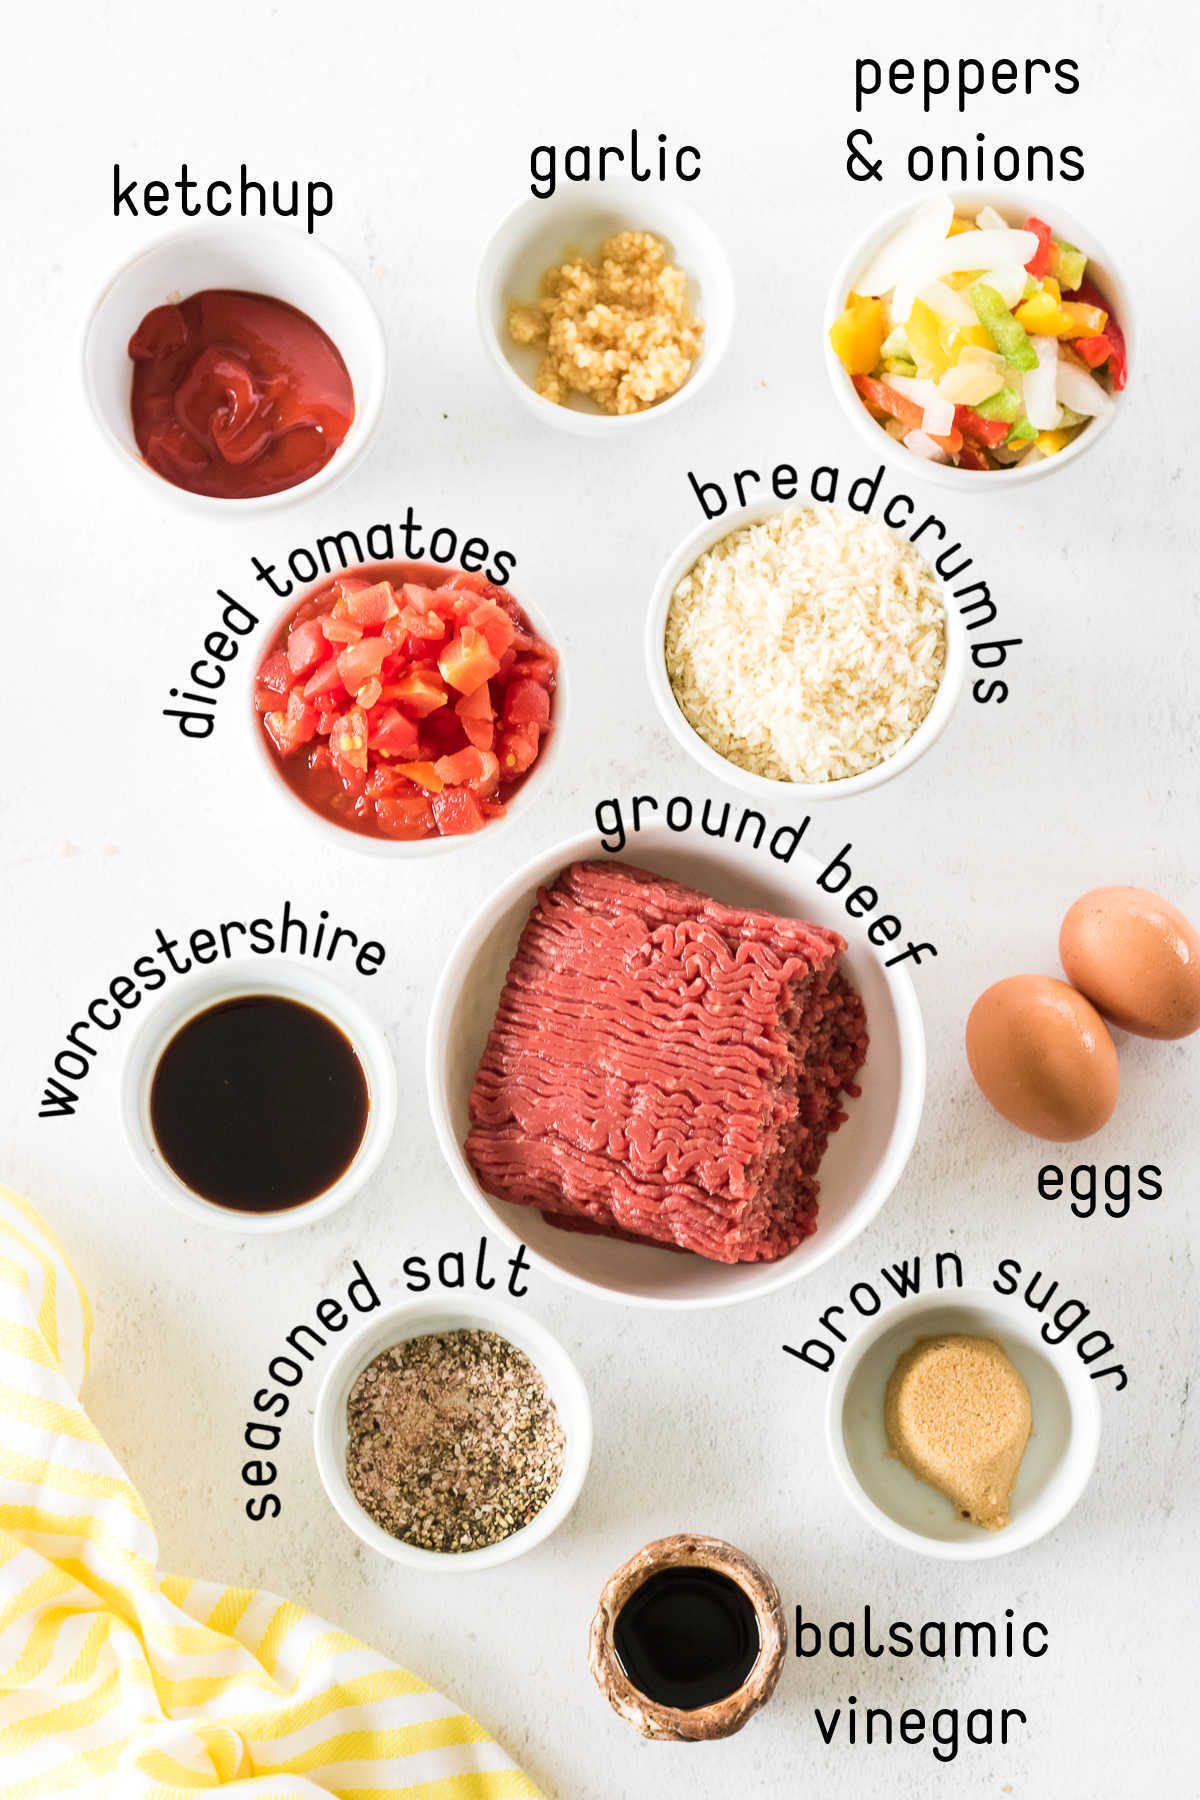 Labeled ingredients for homemade meatloaf.